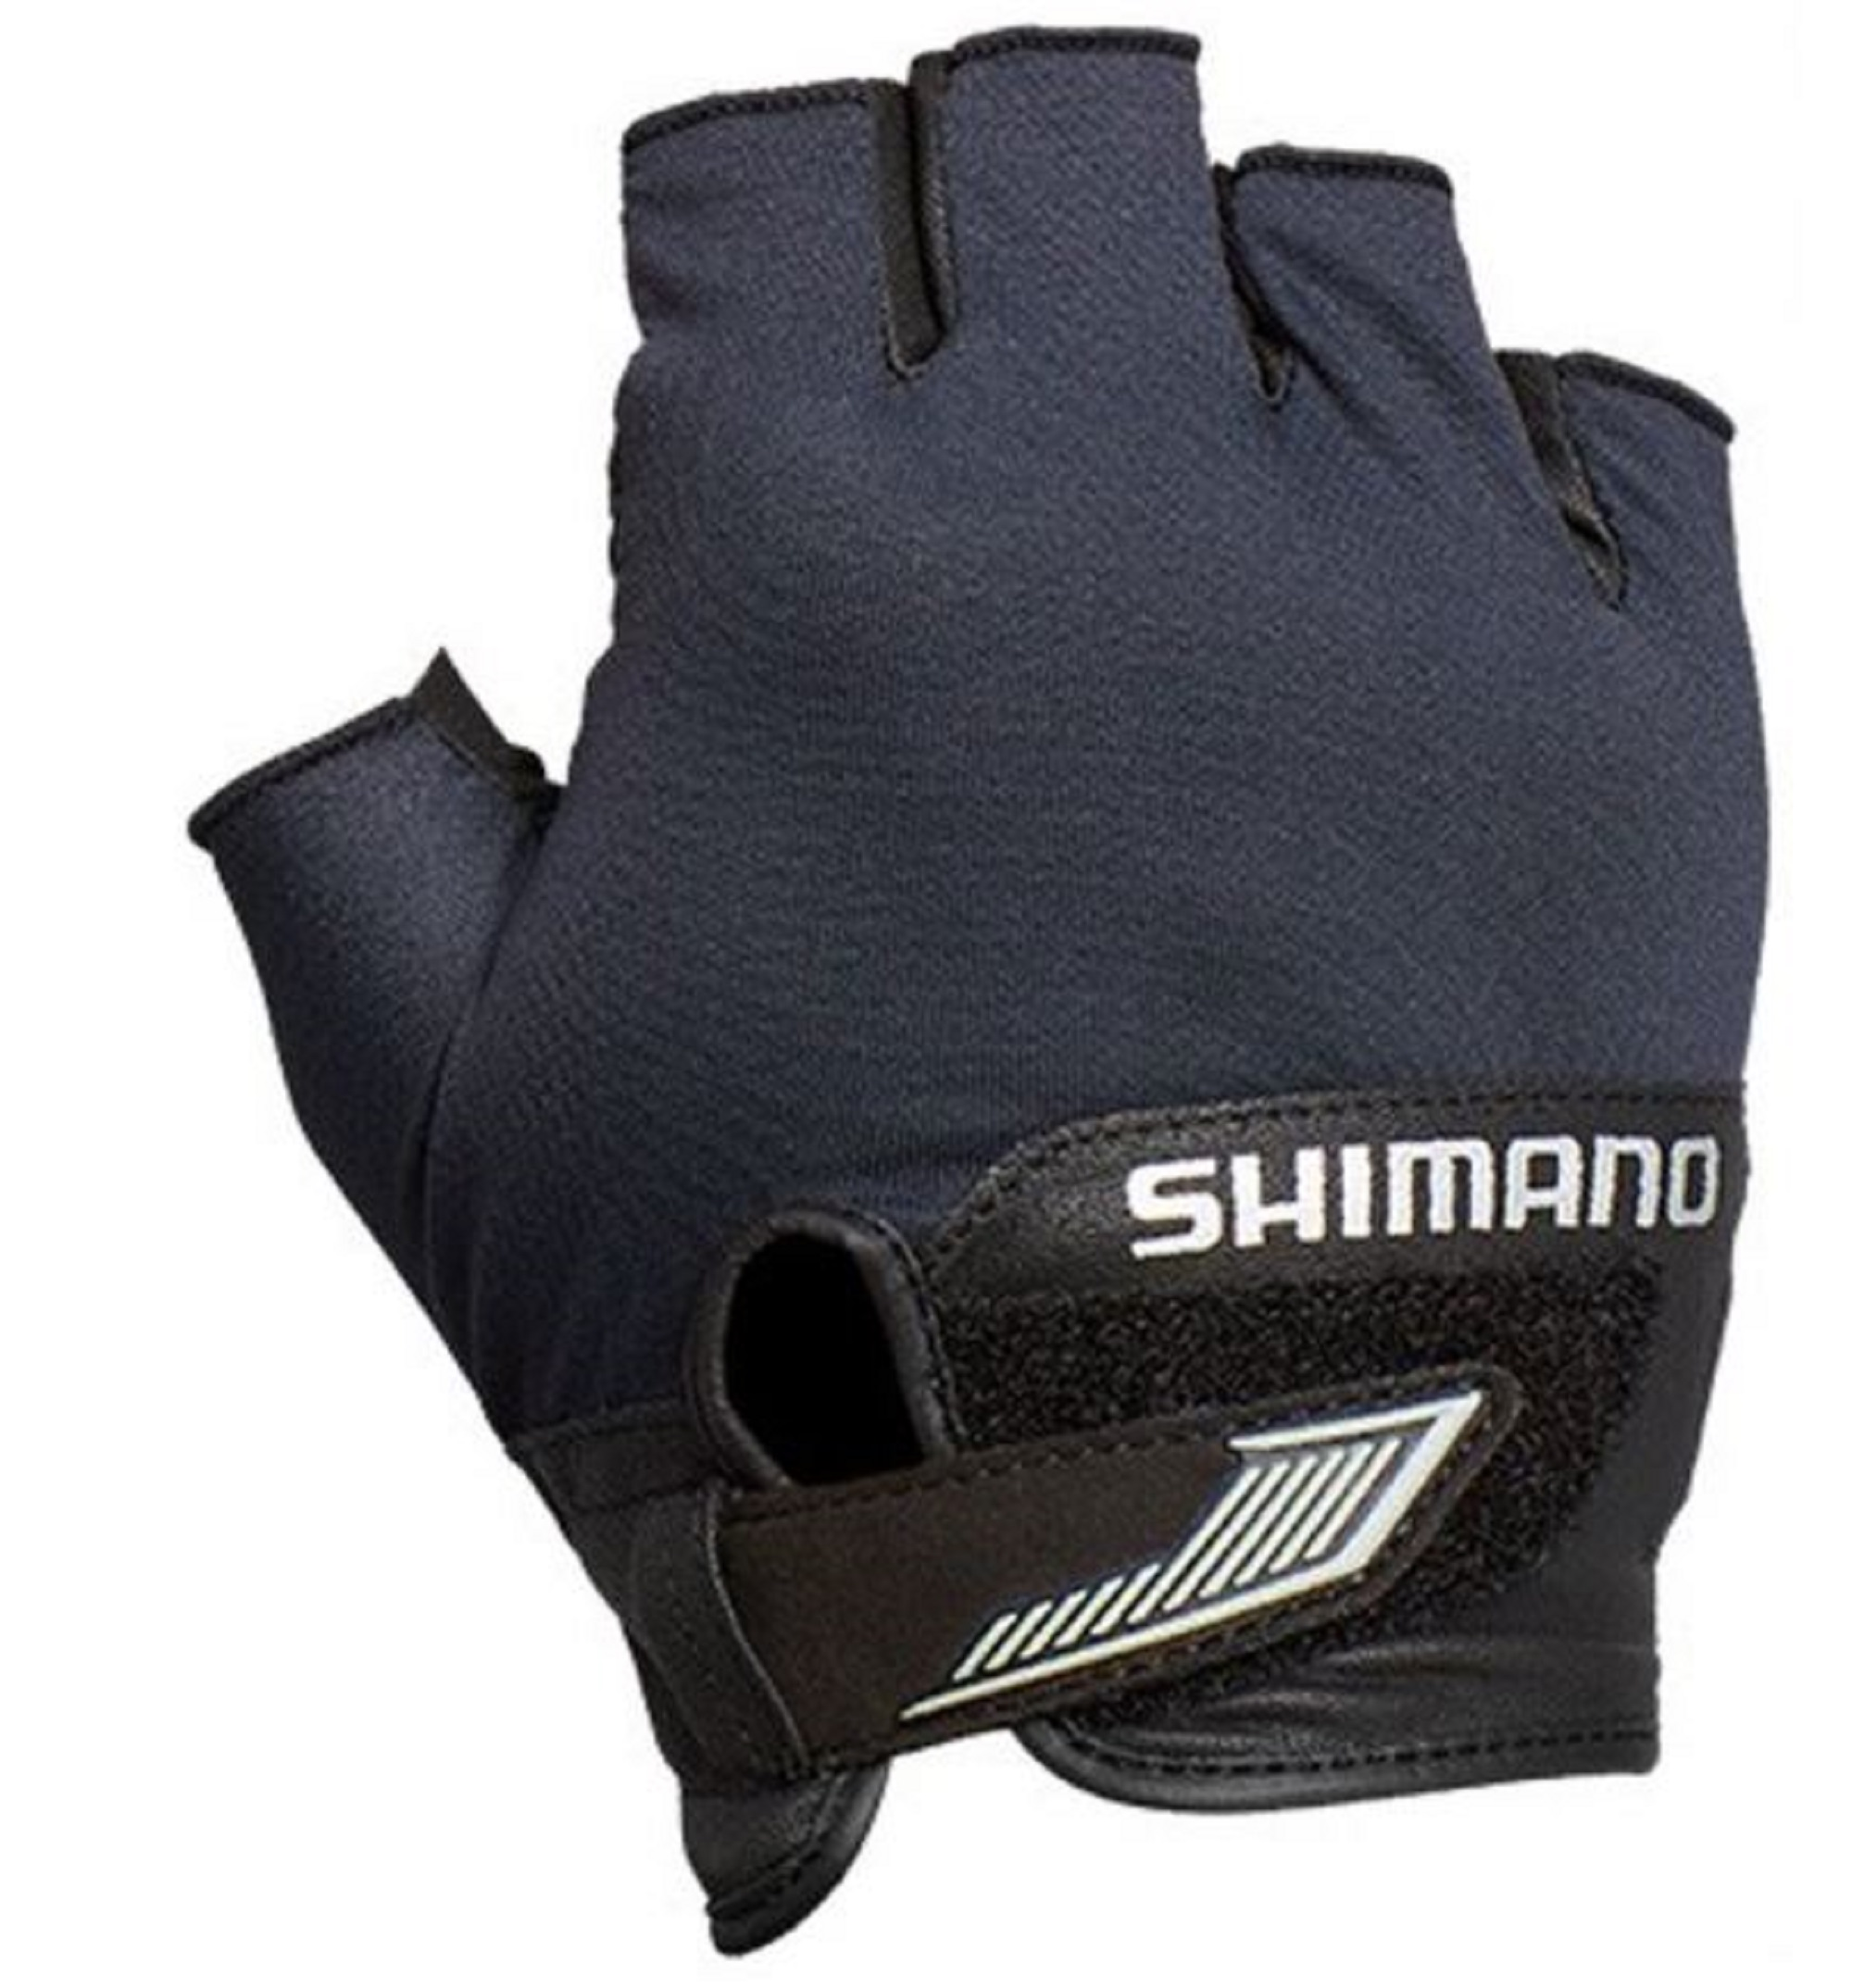 Shimano GL-022S Gloves 3D Casting High Grip 5 Fingerless Bk Size XL 634115